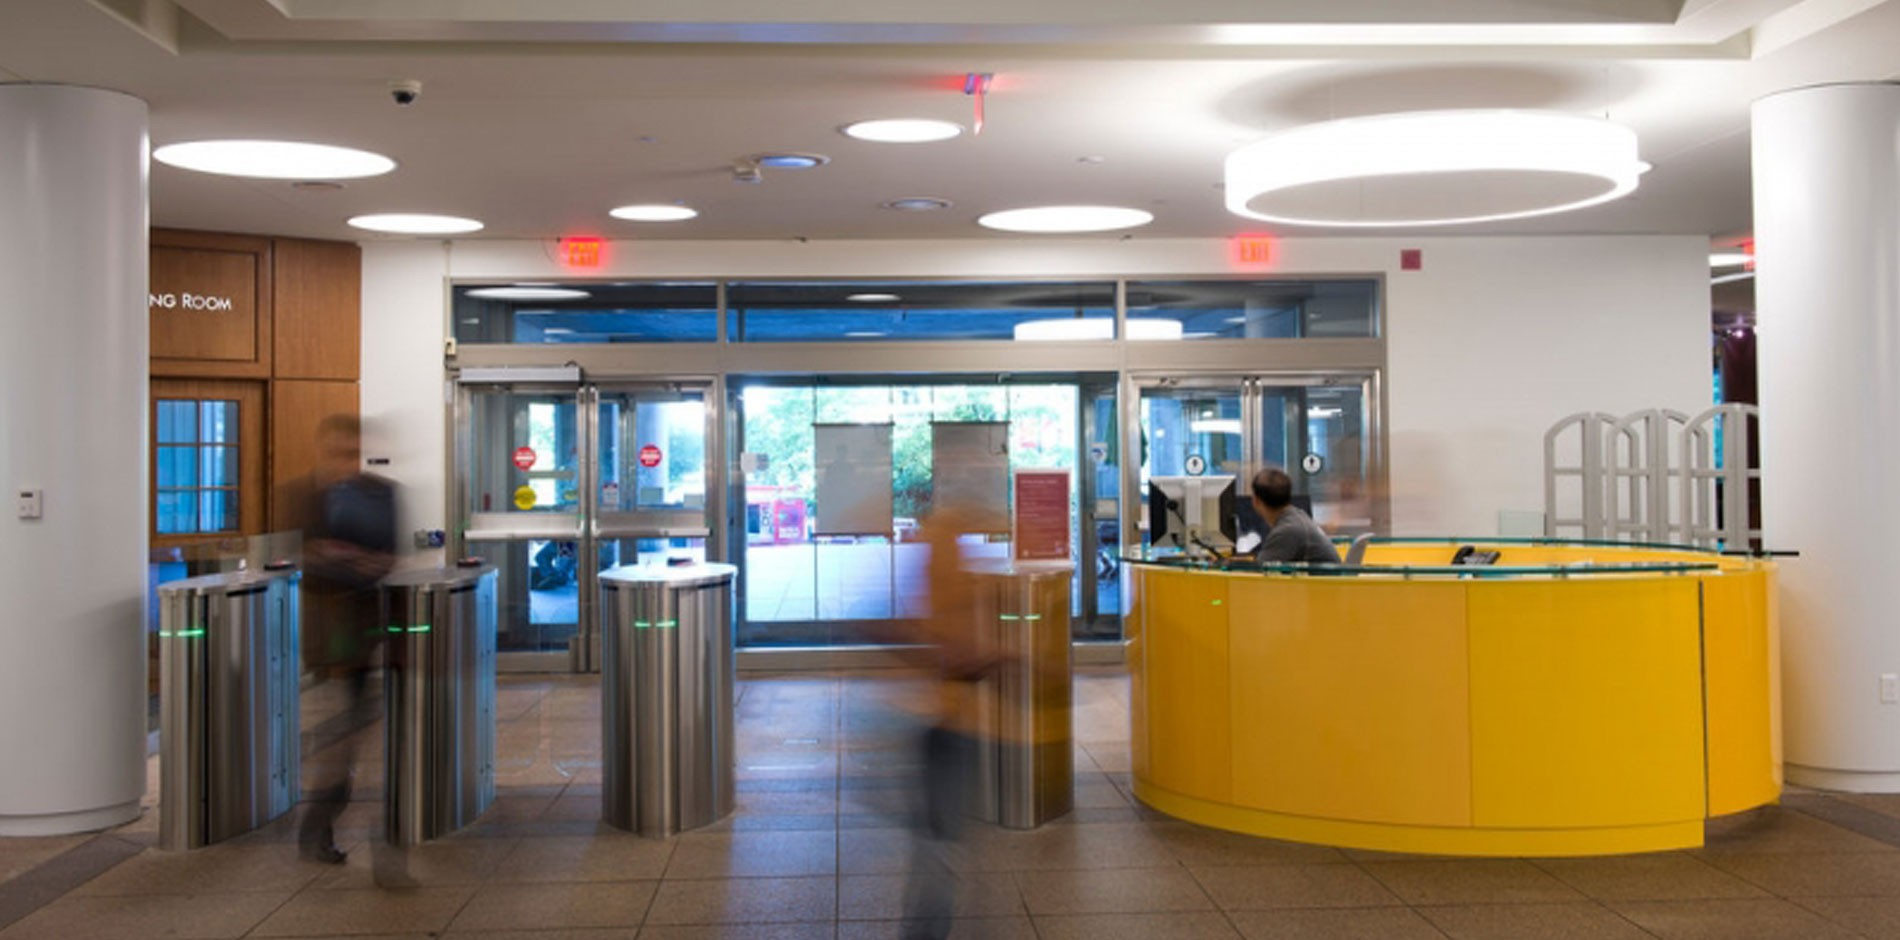 If you're preparing to go t. Northeastern University - Digital Media Commons at Snell ...